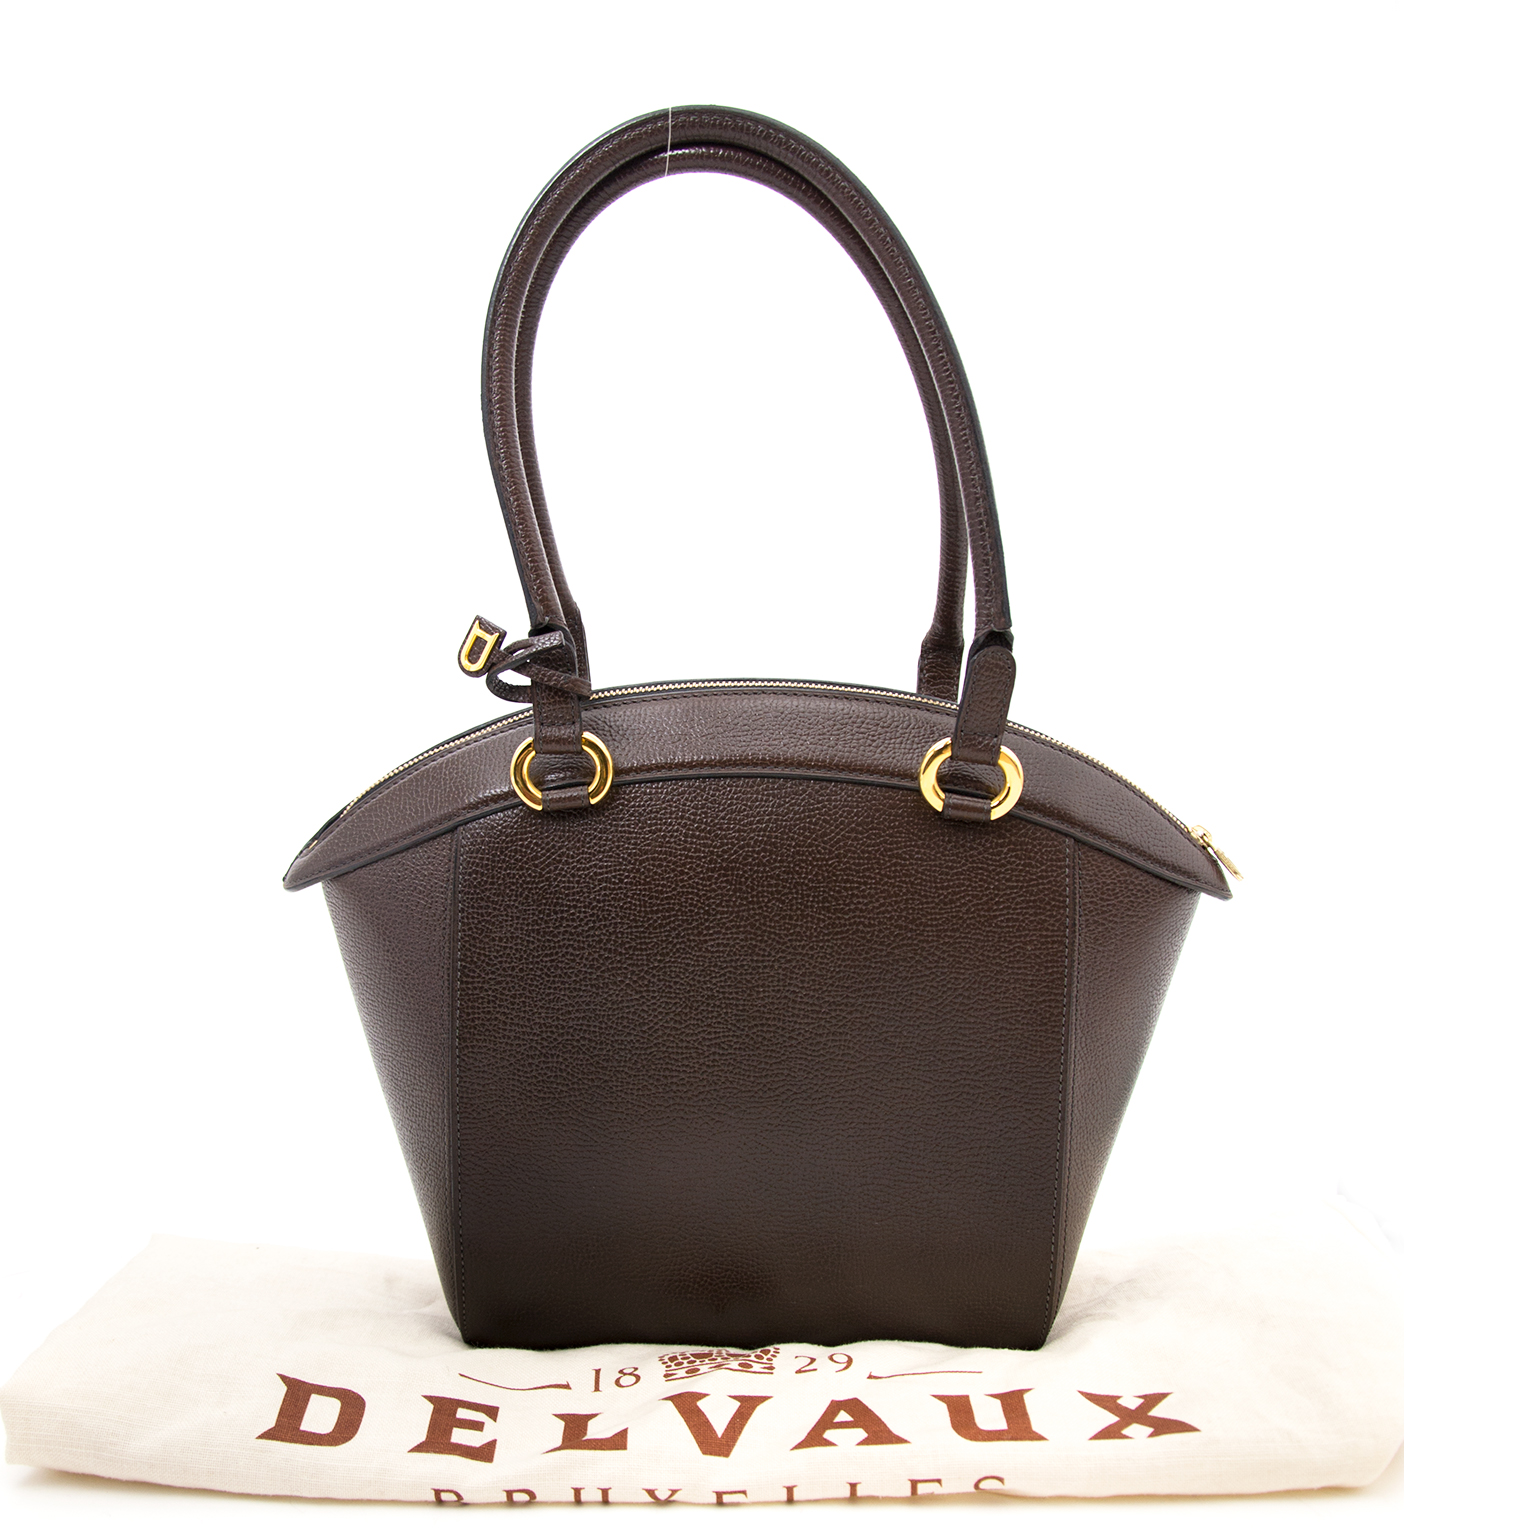 Buy and sell your secondhand Delvaux Brown Pebbled Leather Bag for the best price.